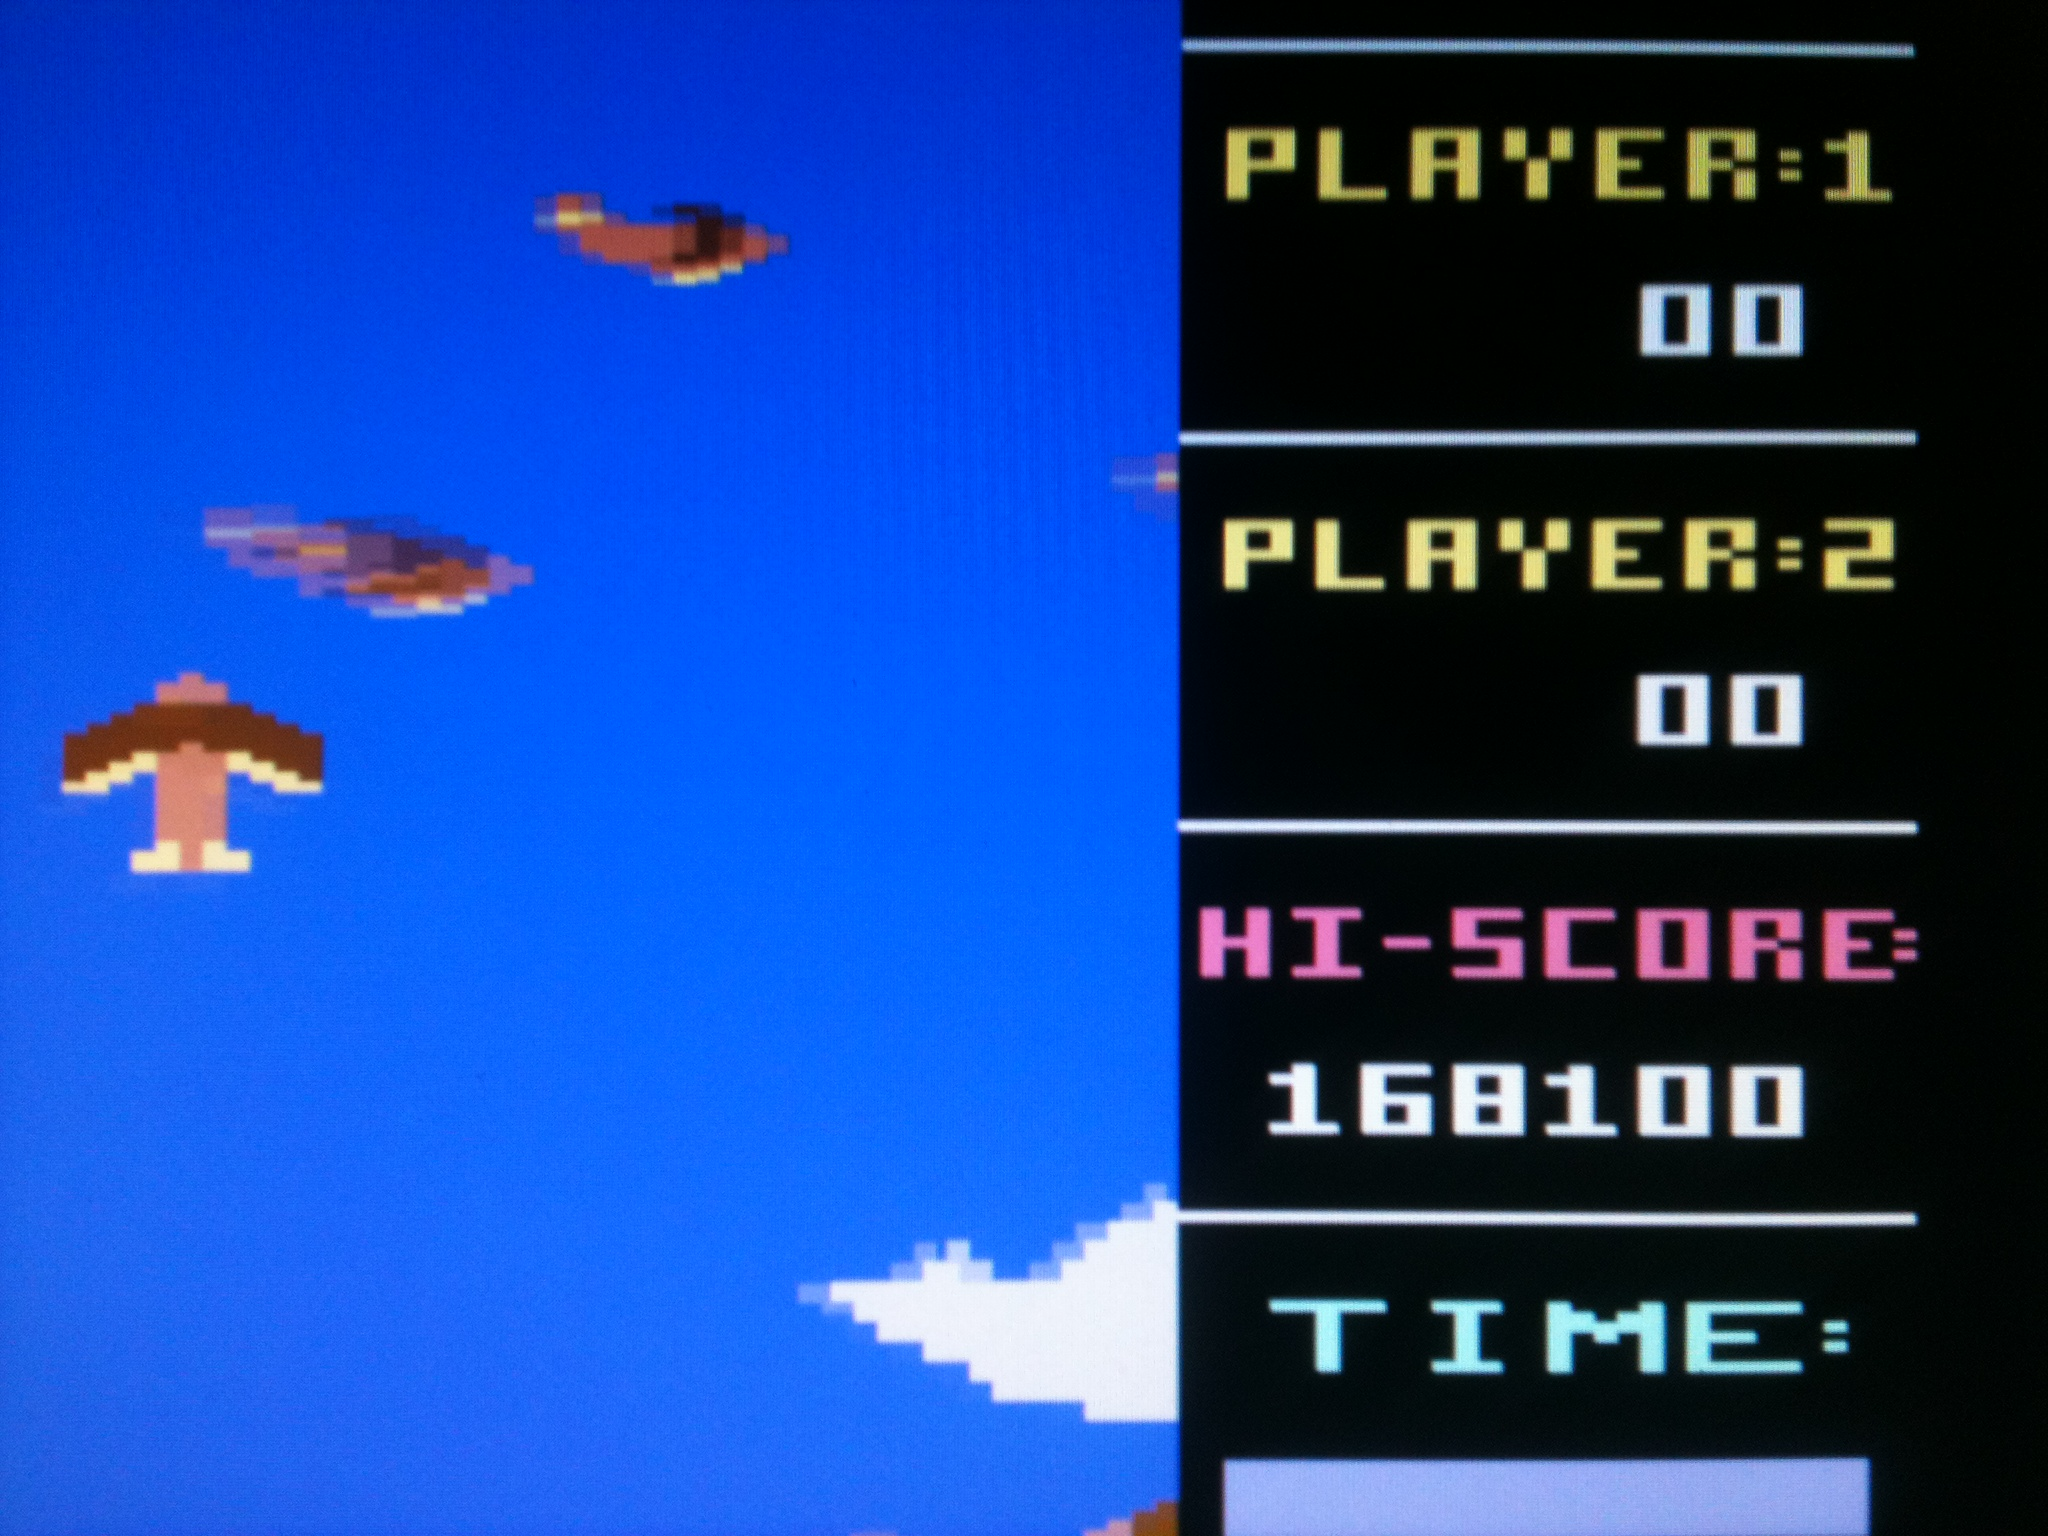 kernzy: Space Pilot (Commodore 64 Emulated) 168,100 points on 2015-04-22 17:23:37